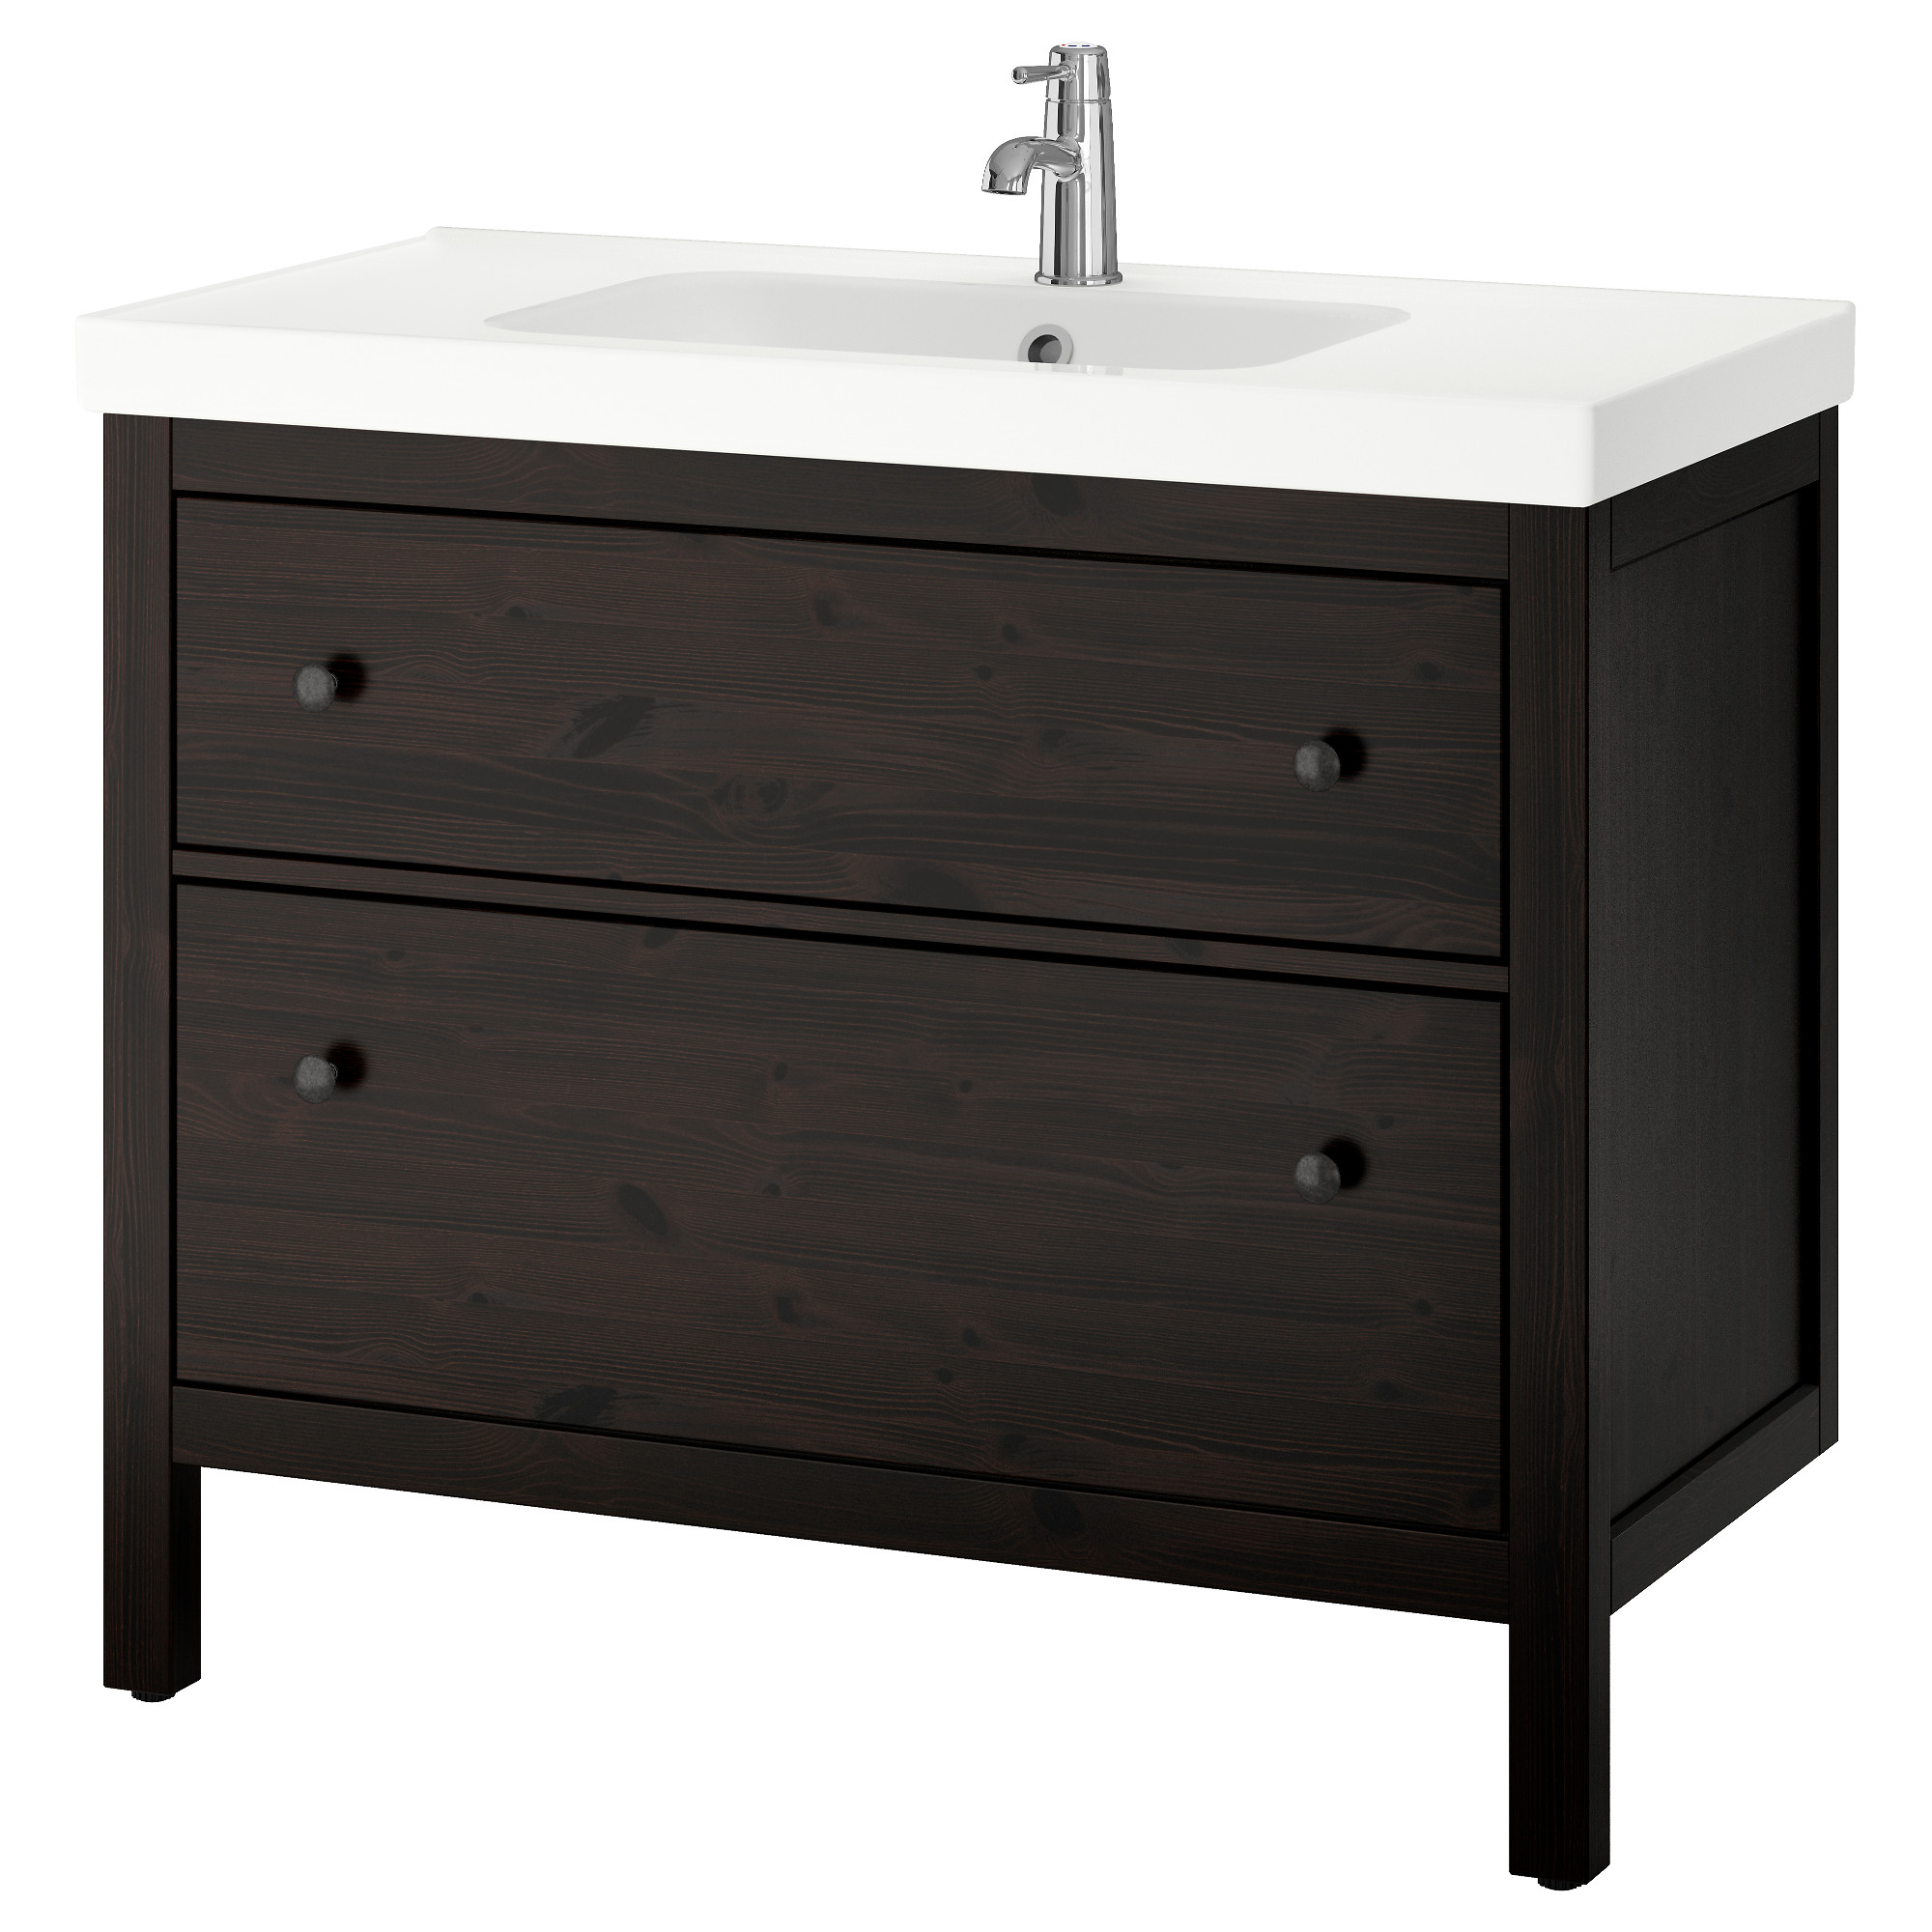 Bath Vanity Ikea Bathroom Vanities Countertops Ikea